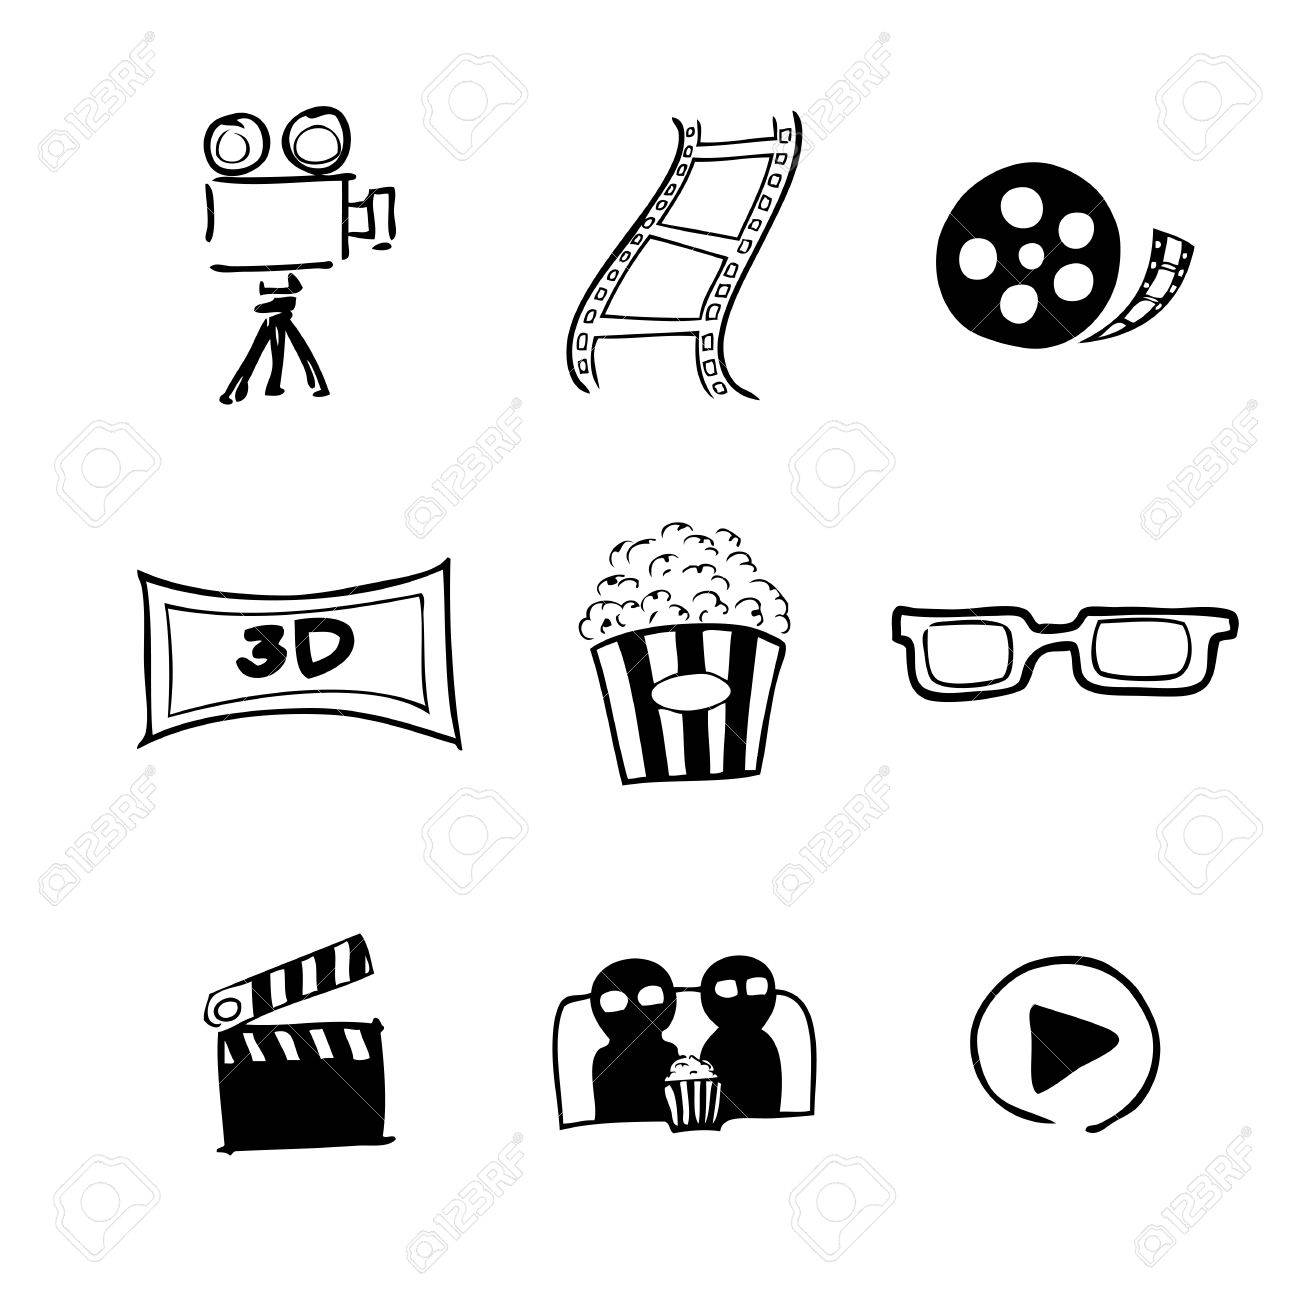 movie cinema icons chinese brush drawing royalty free cliparts